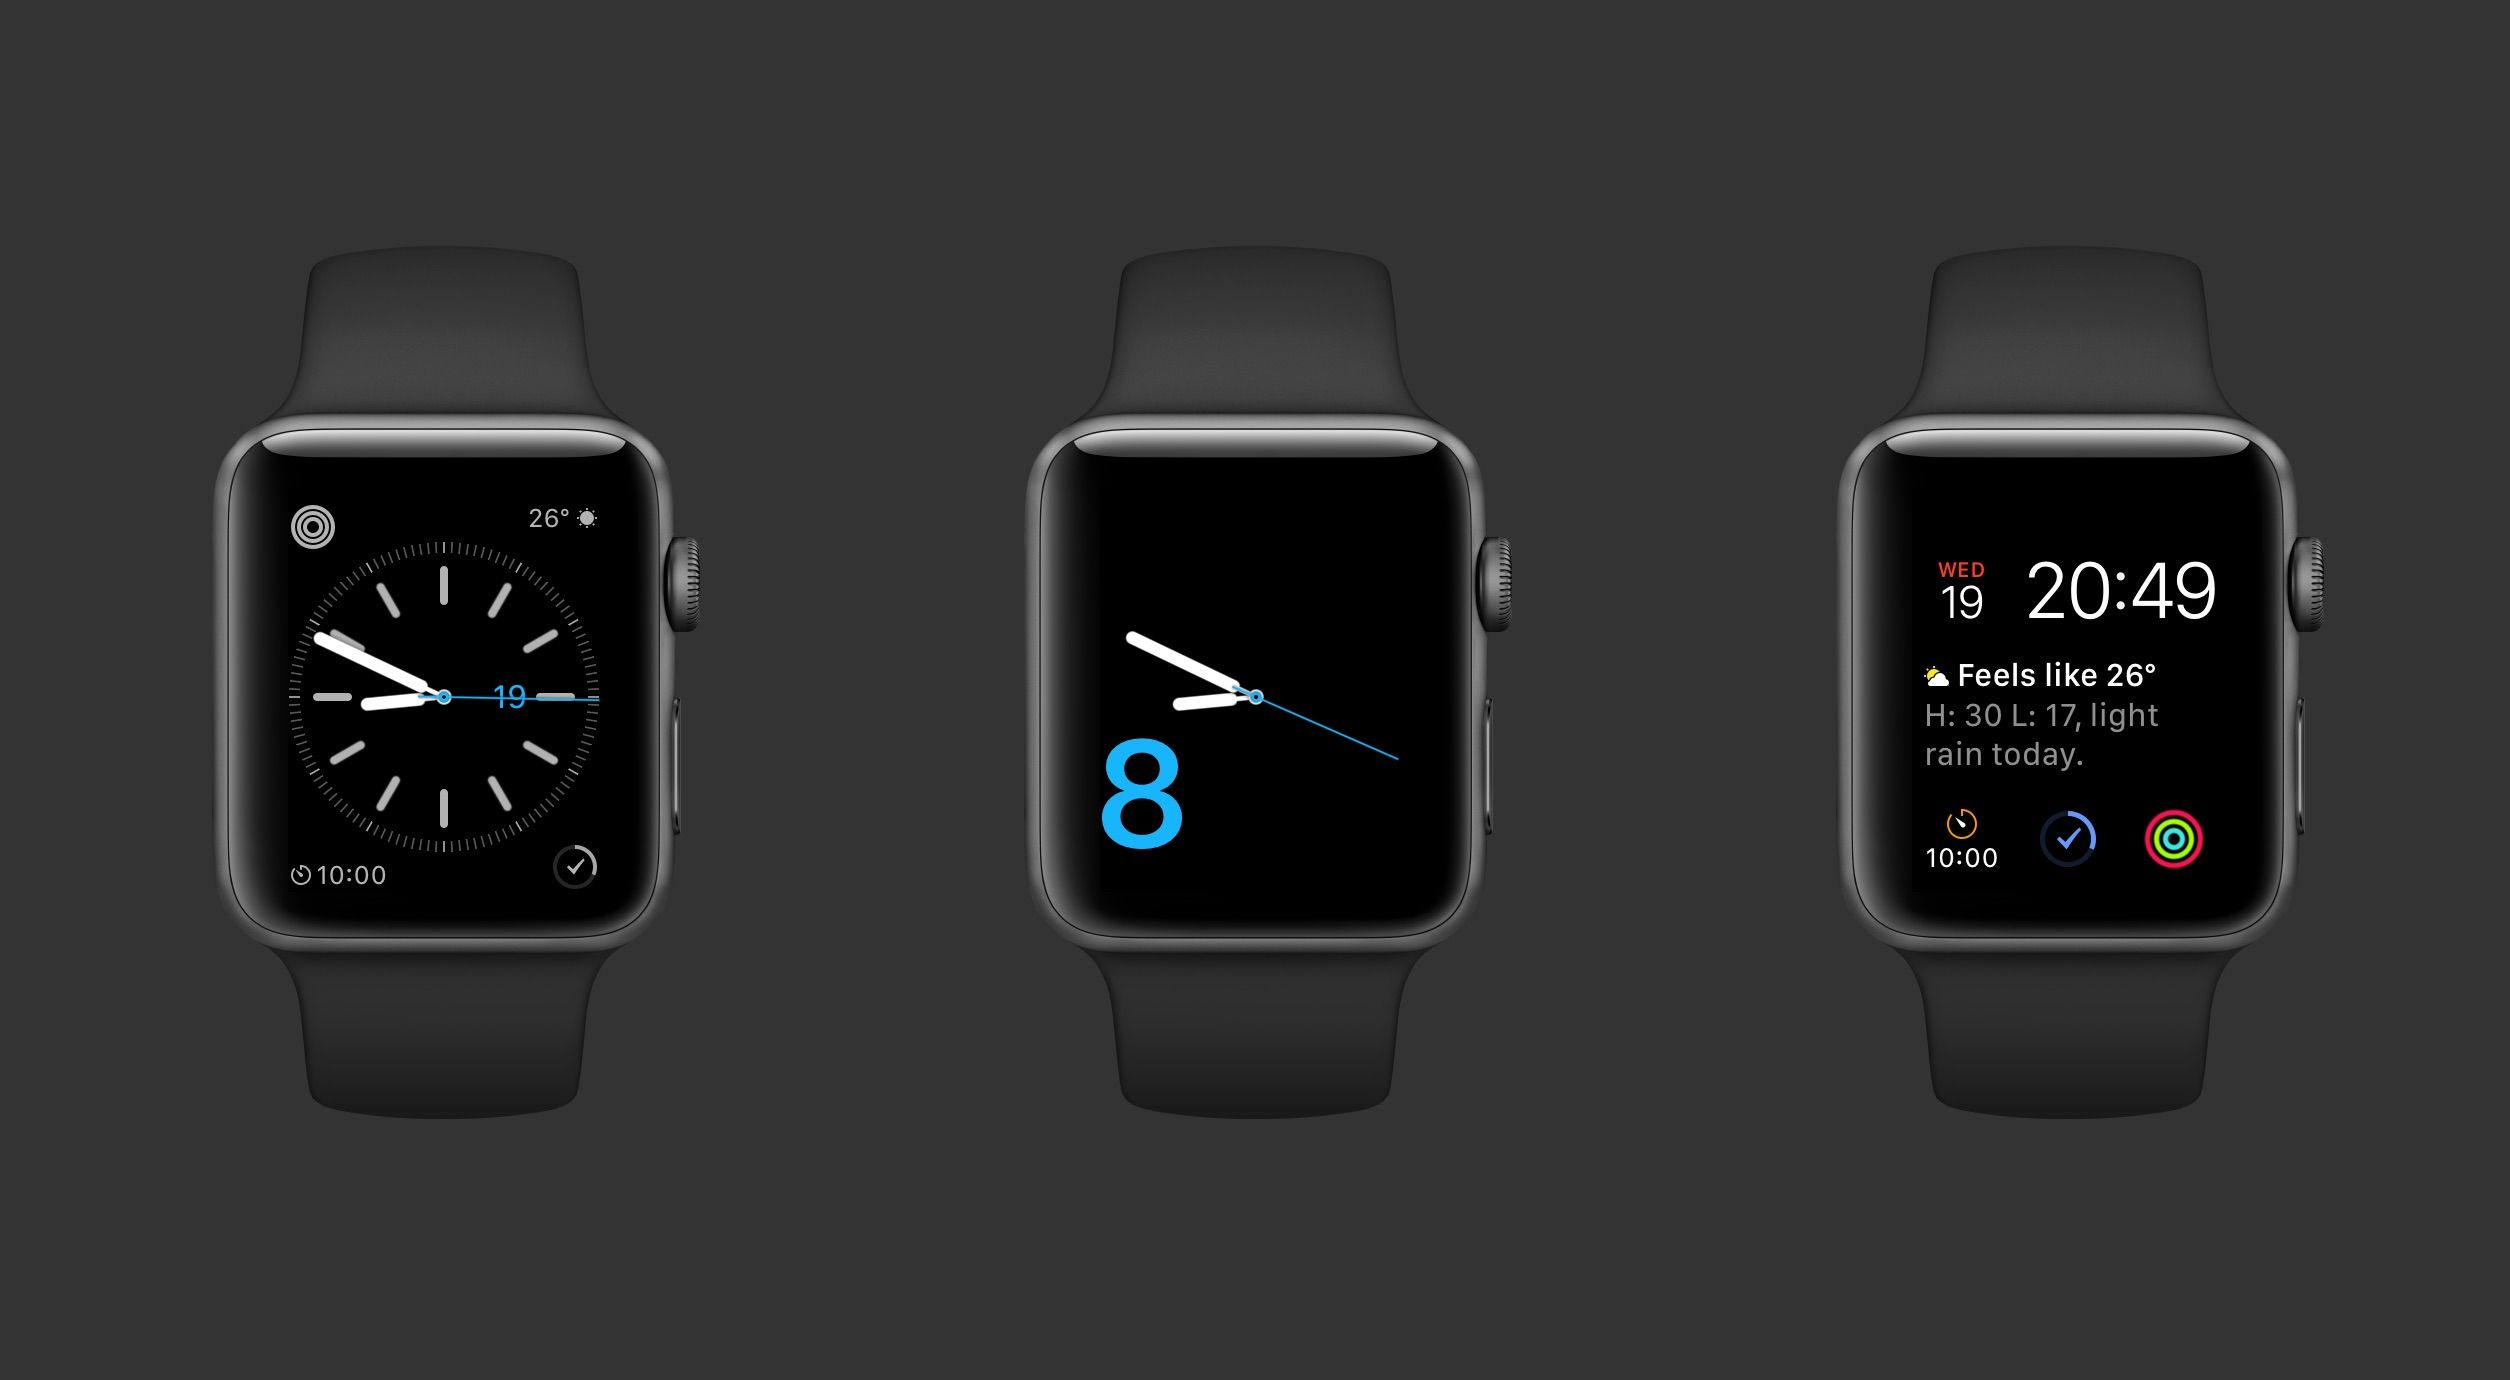 Collection of Watch Faces I regularly use